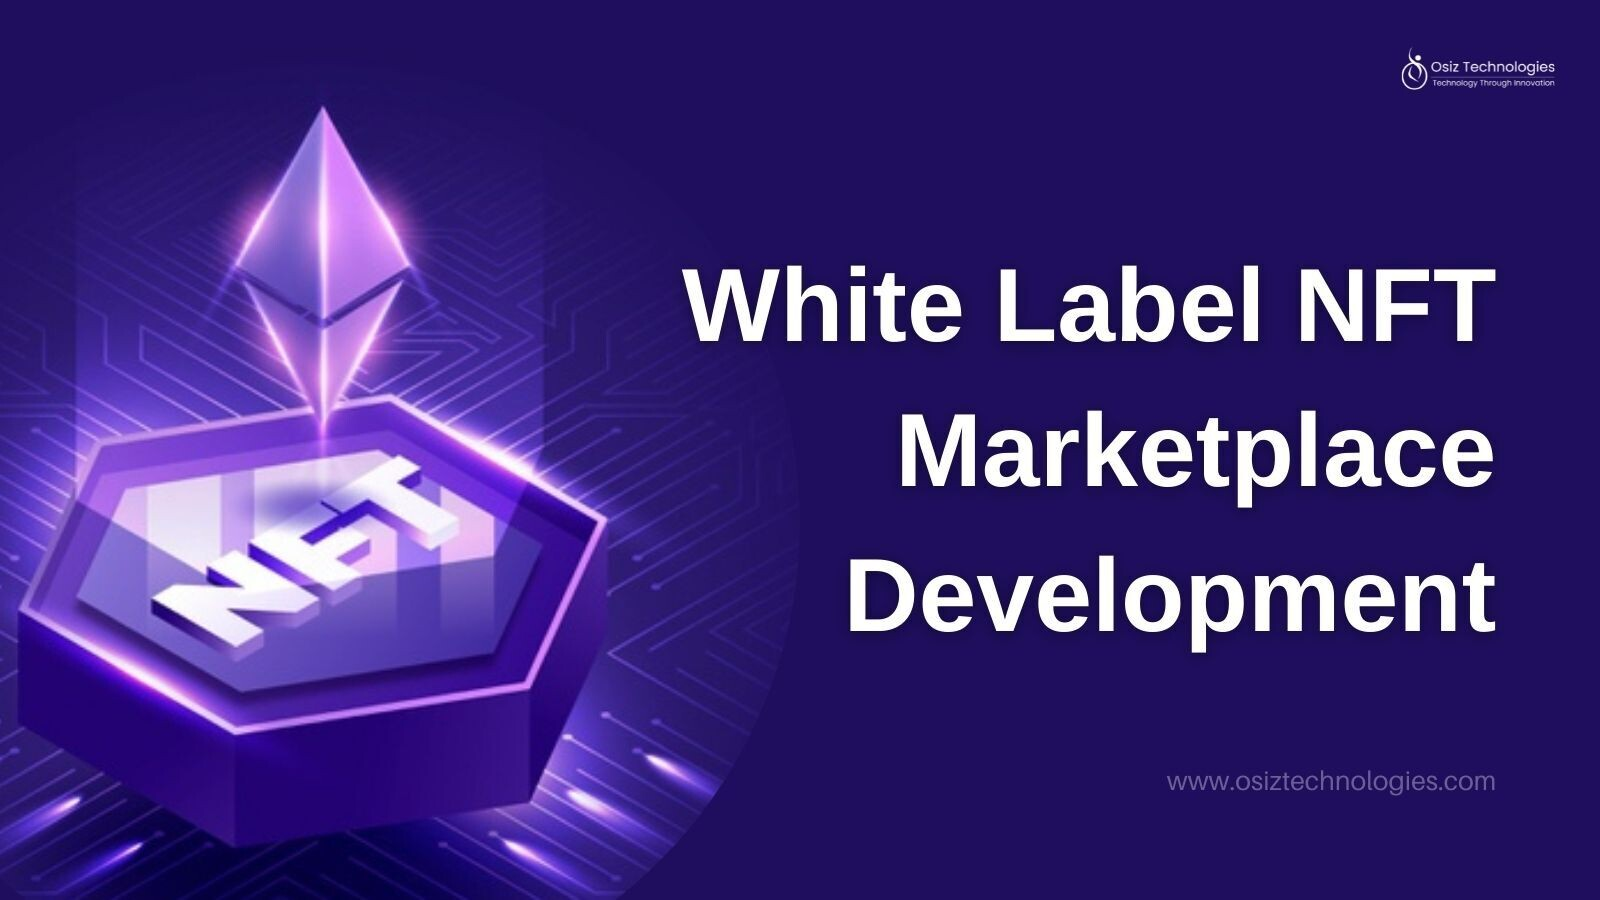 What are the business benefits of the White Label NFT marketplace Solution?